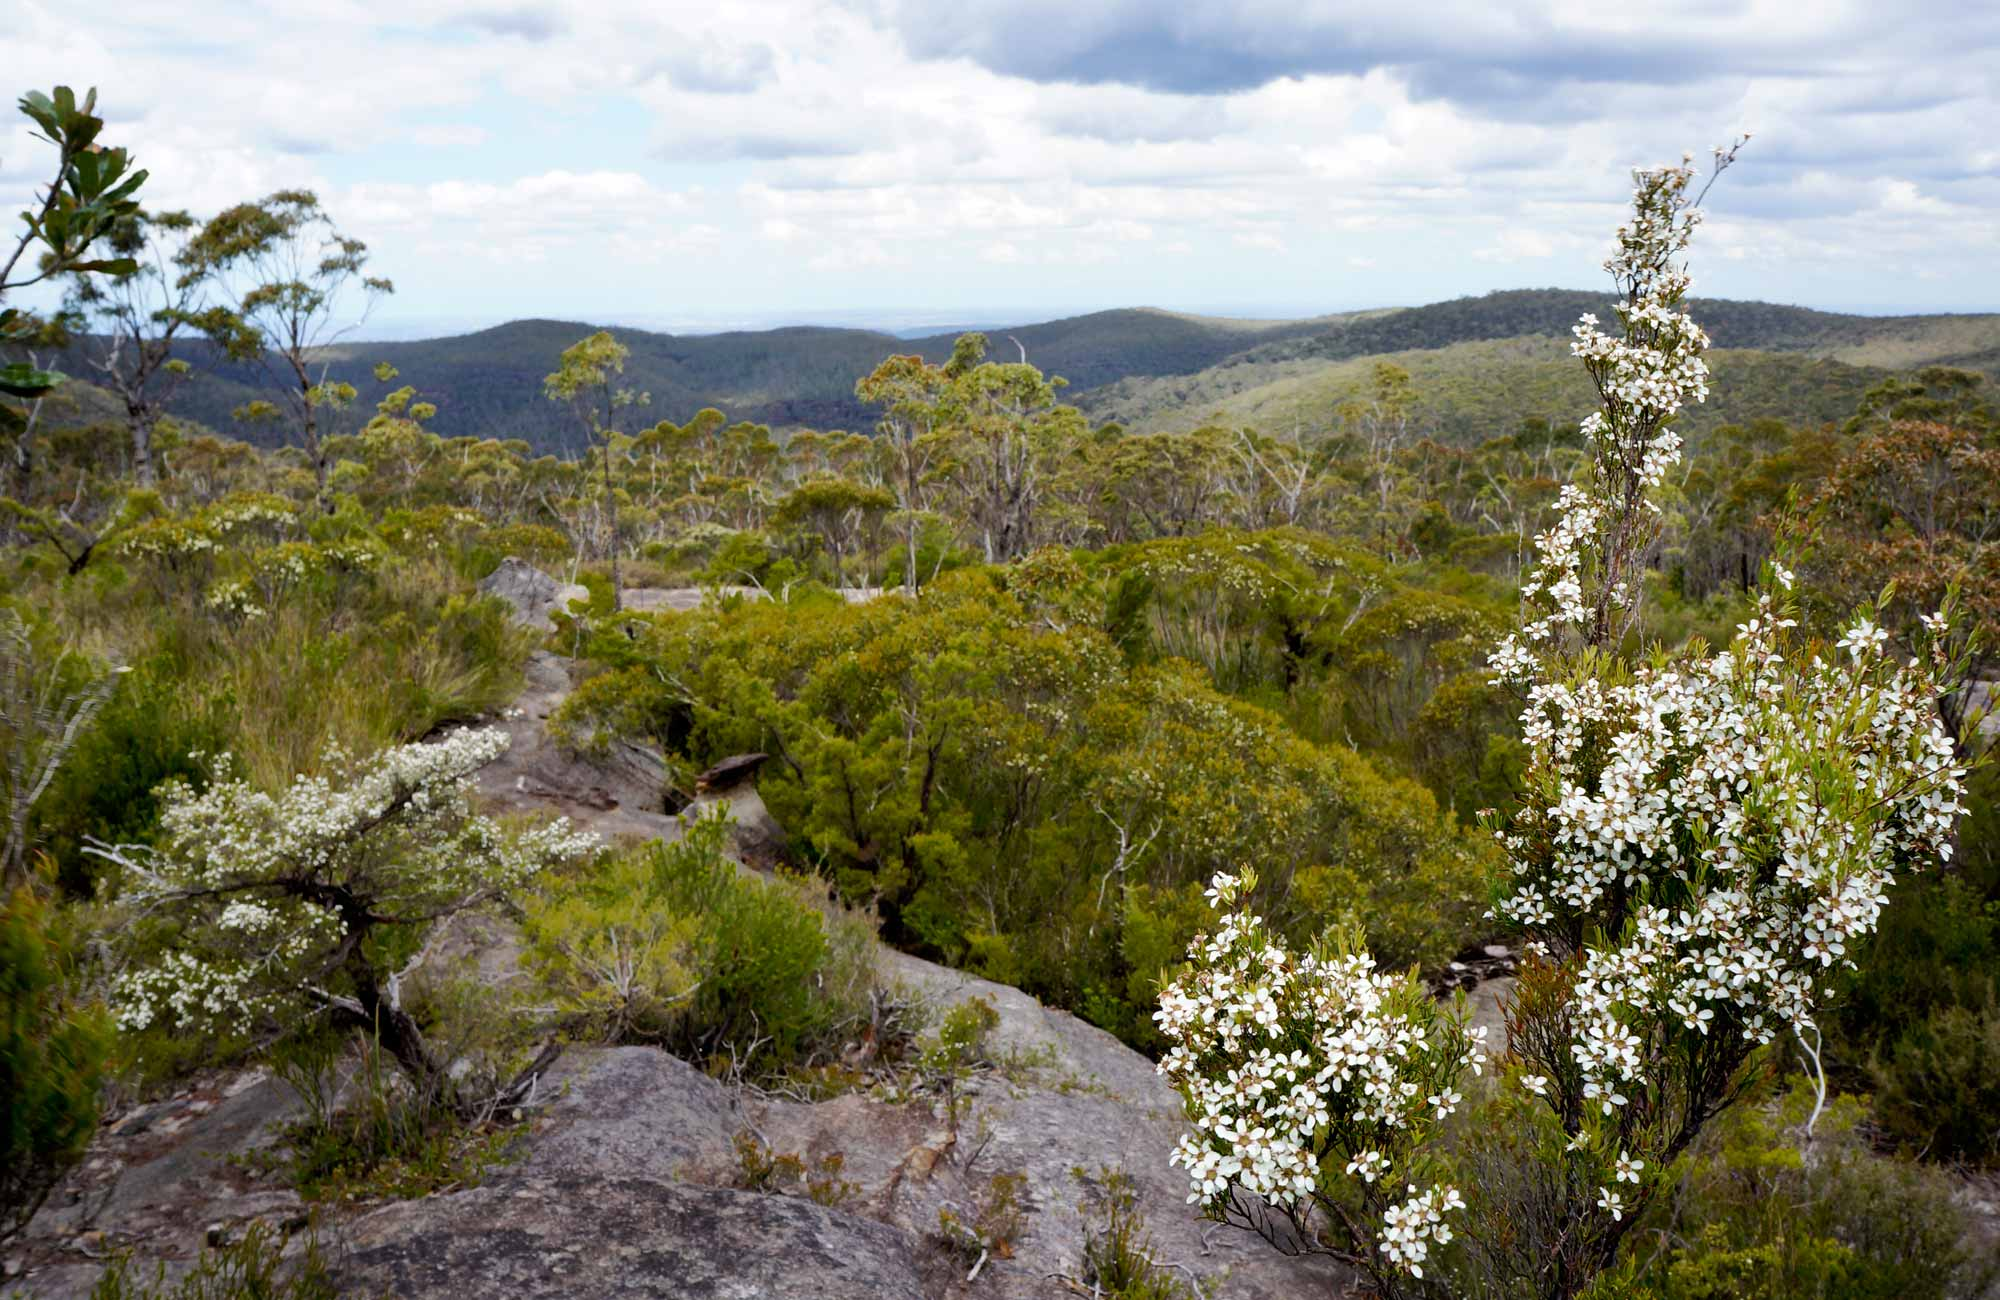 Heathland near Murphys Glen campground, Blue Mountains National Park. Photo: Steve Alton